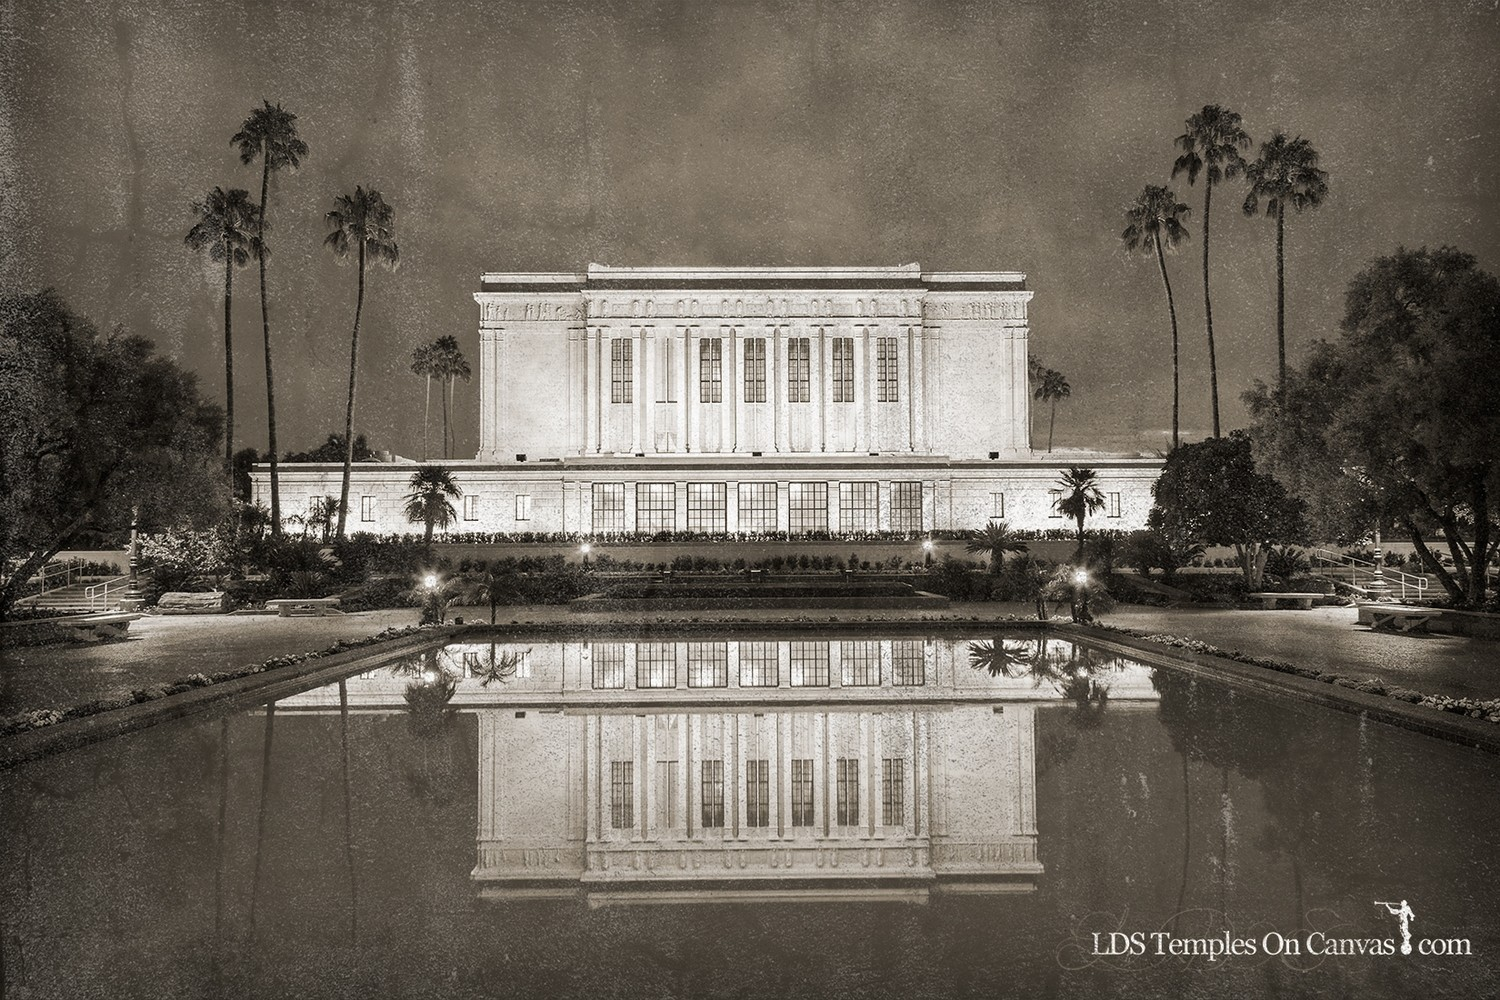 Mesa Arizona LDS Temple - Pioneer Reflections - Rustic